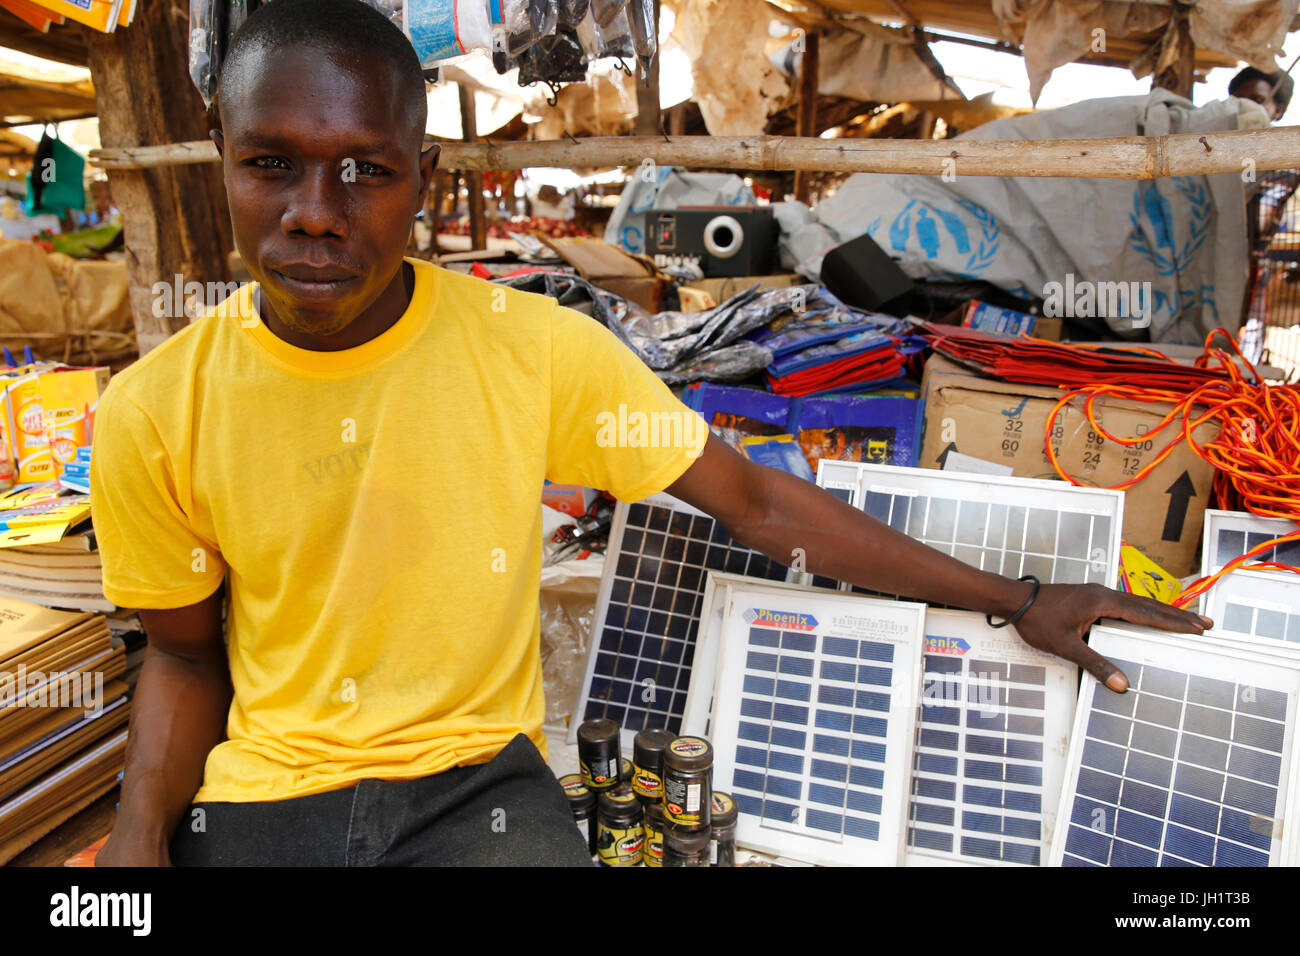 Robert Candia runs 2 stalls at Bweyale market. He received 3 loans from Uganda Microfinance Foundation.  Uganda. - Stock Image